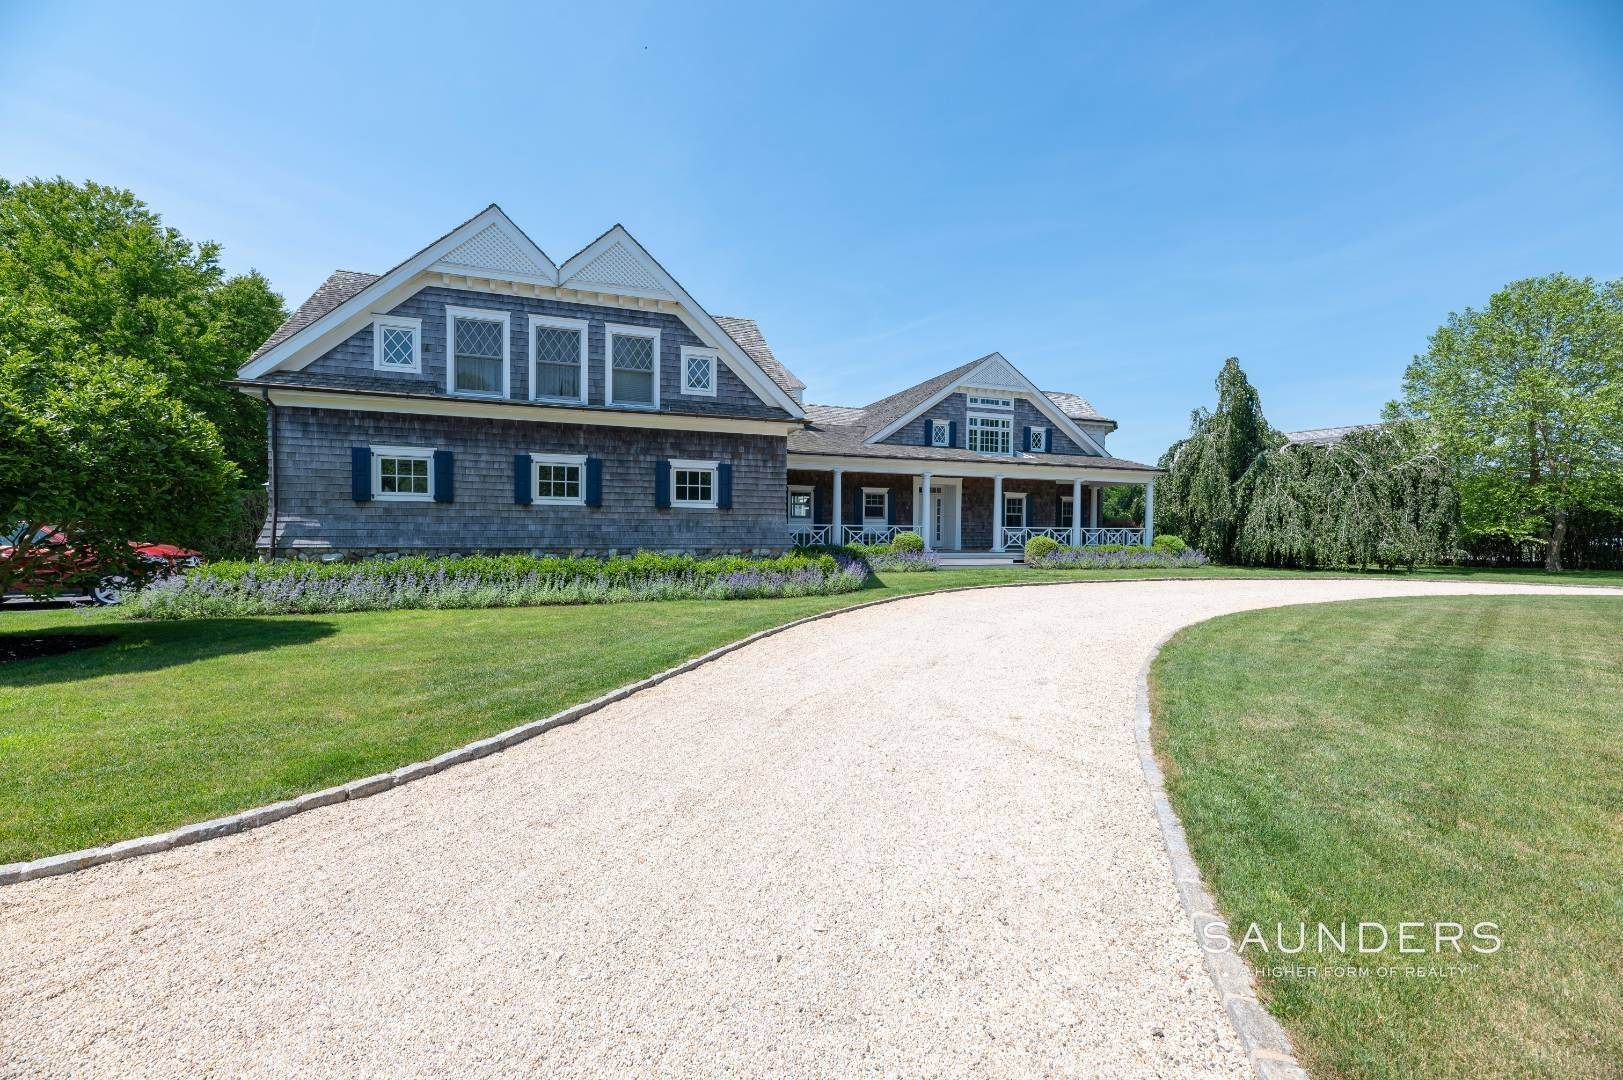 Single Family Homes at Bridgehampton South Overlooking A Private Vineyard Bridgehampton, Southampton Town, NY 11932